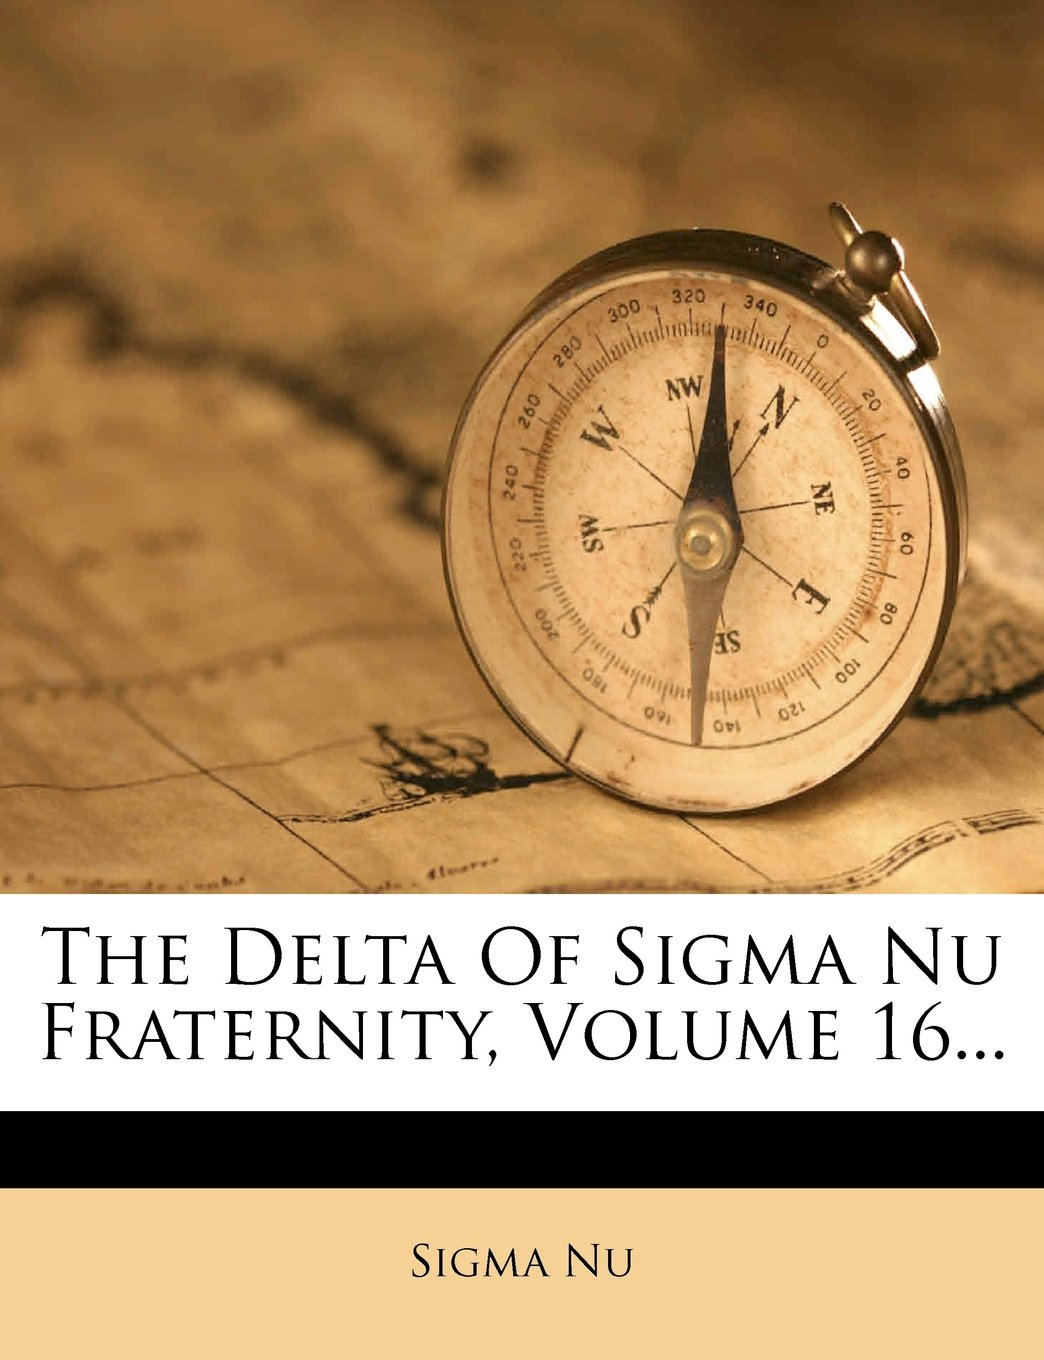 The Delta Of Sigma Nu Fraternity, Volume 16... pdf